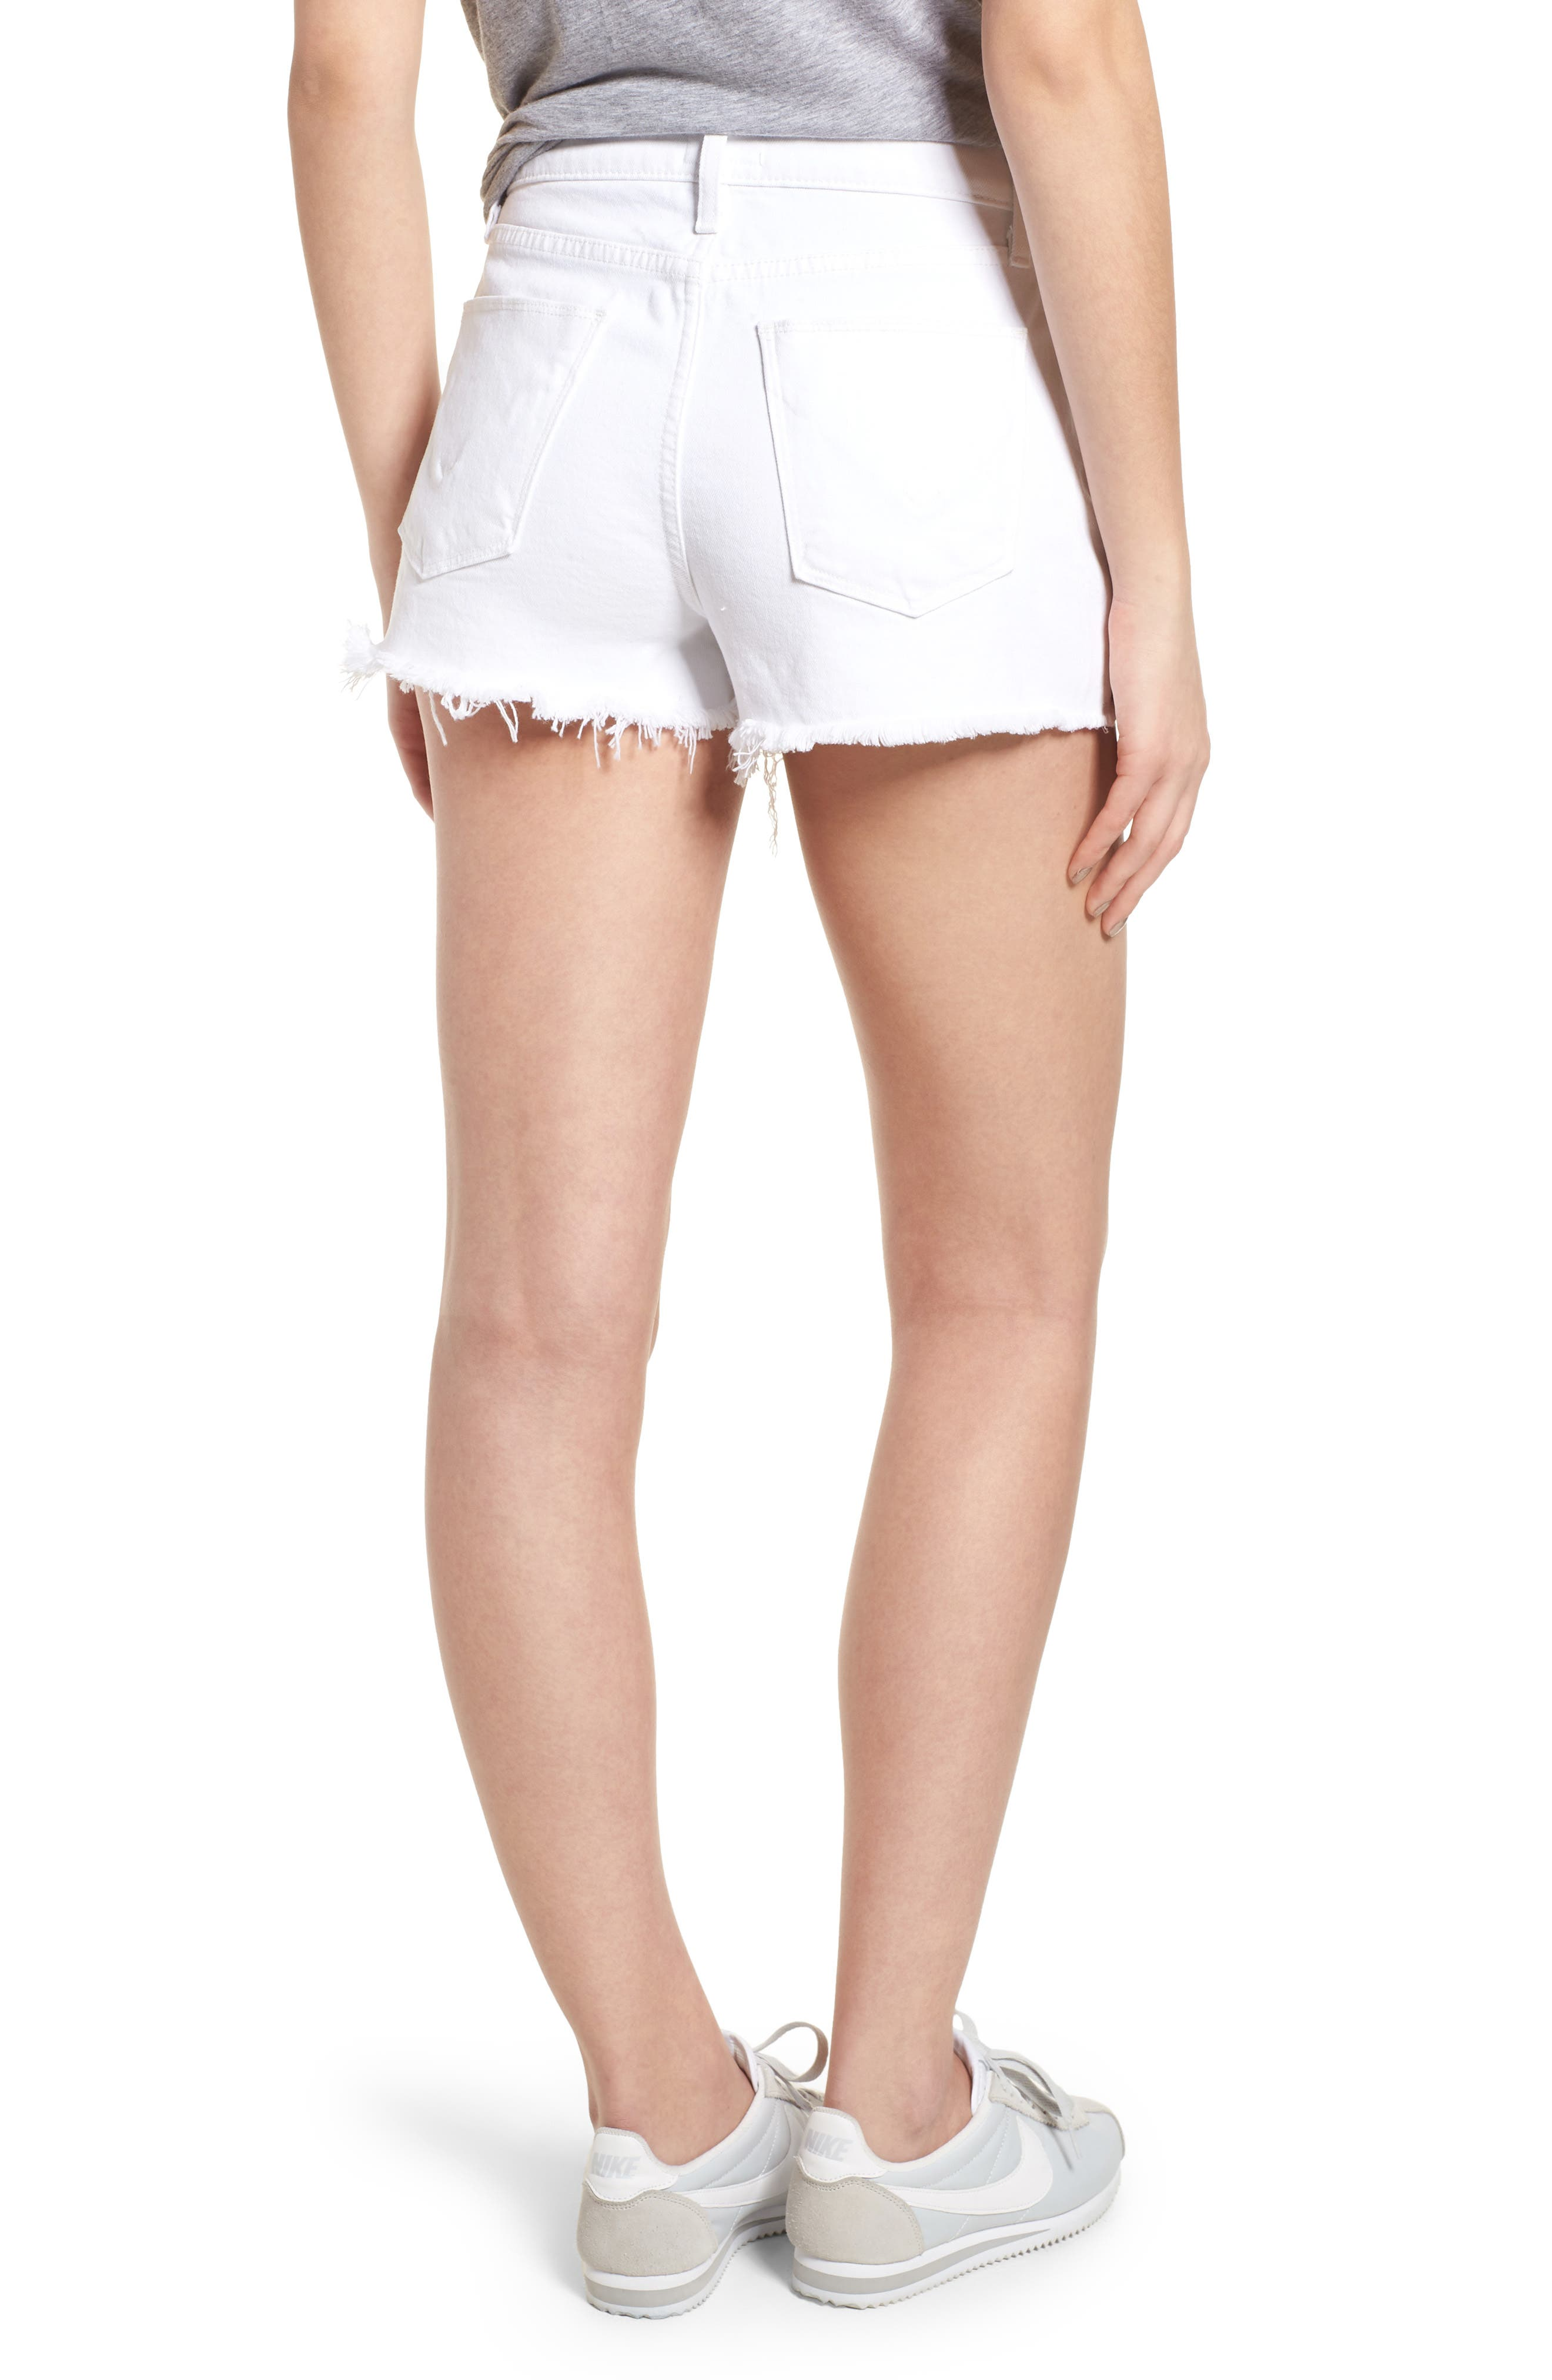 Zoeey Button Fly High Waist Denim Shorts,                             Alternate thumbnail 2, color,                             White